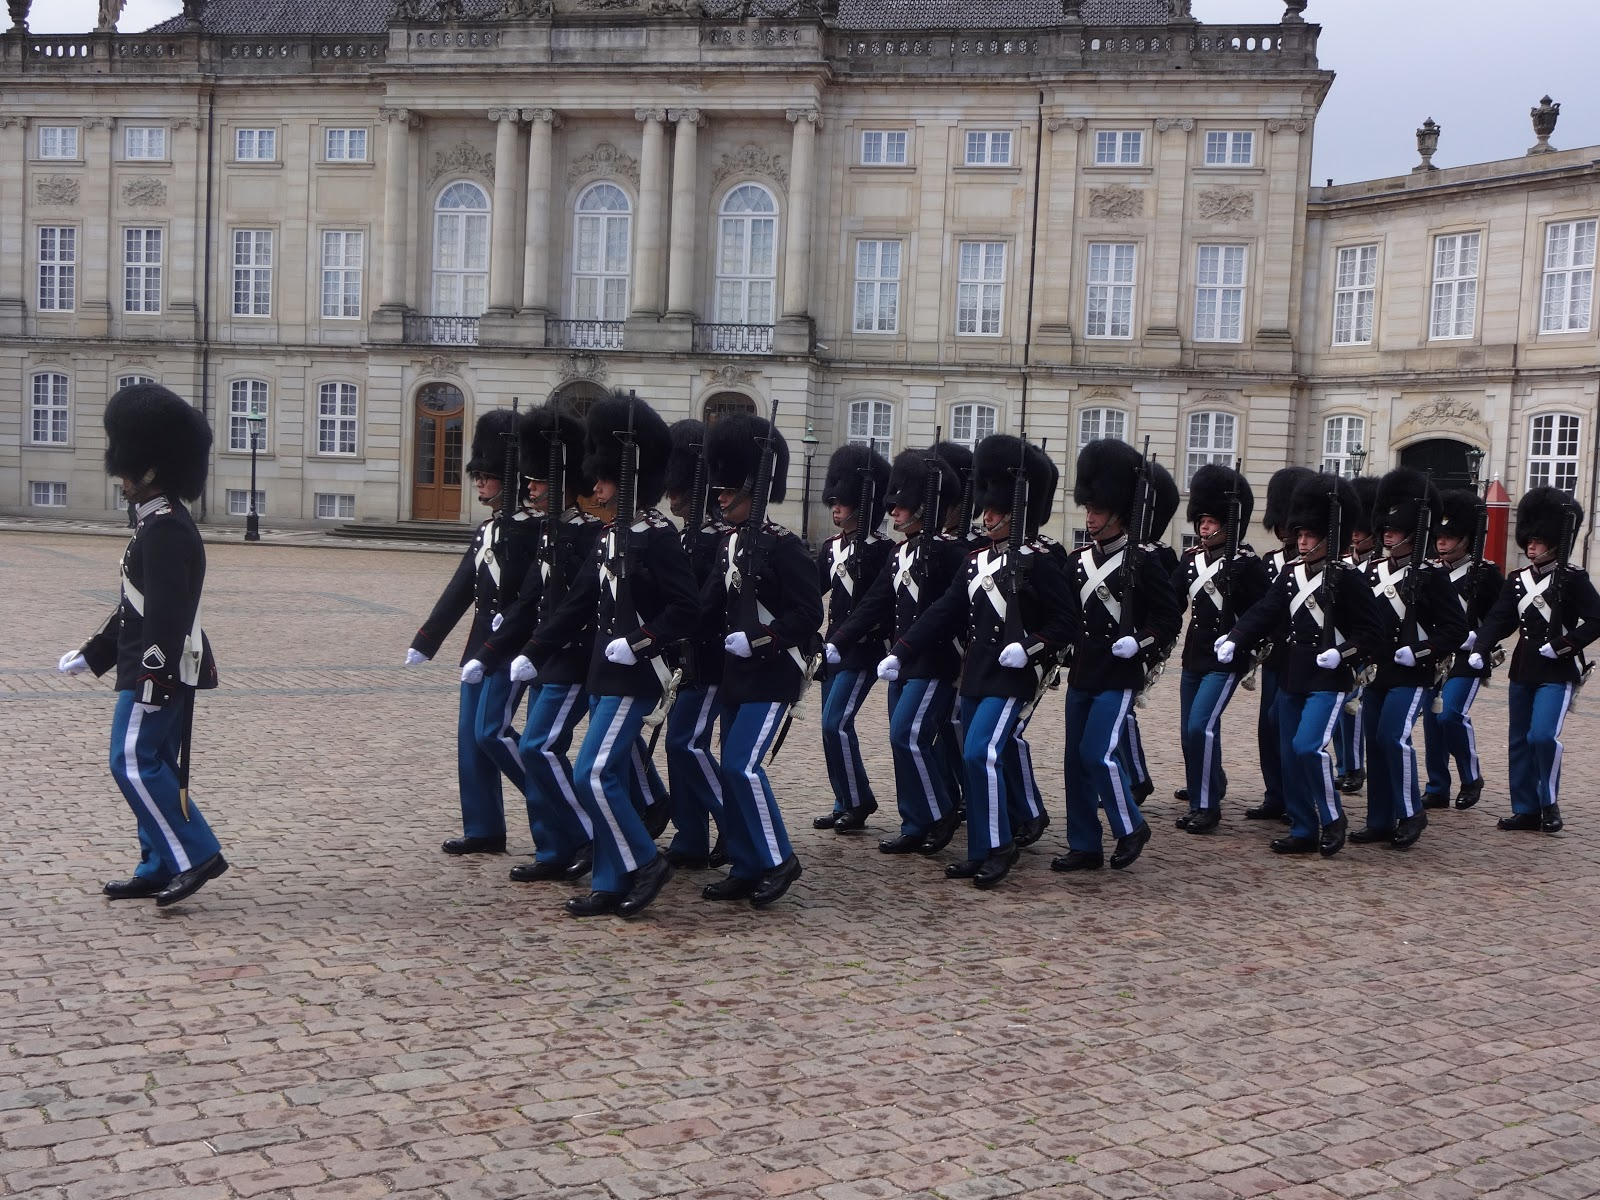 Guards at Amalienborg Palace